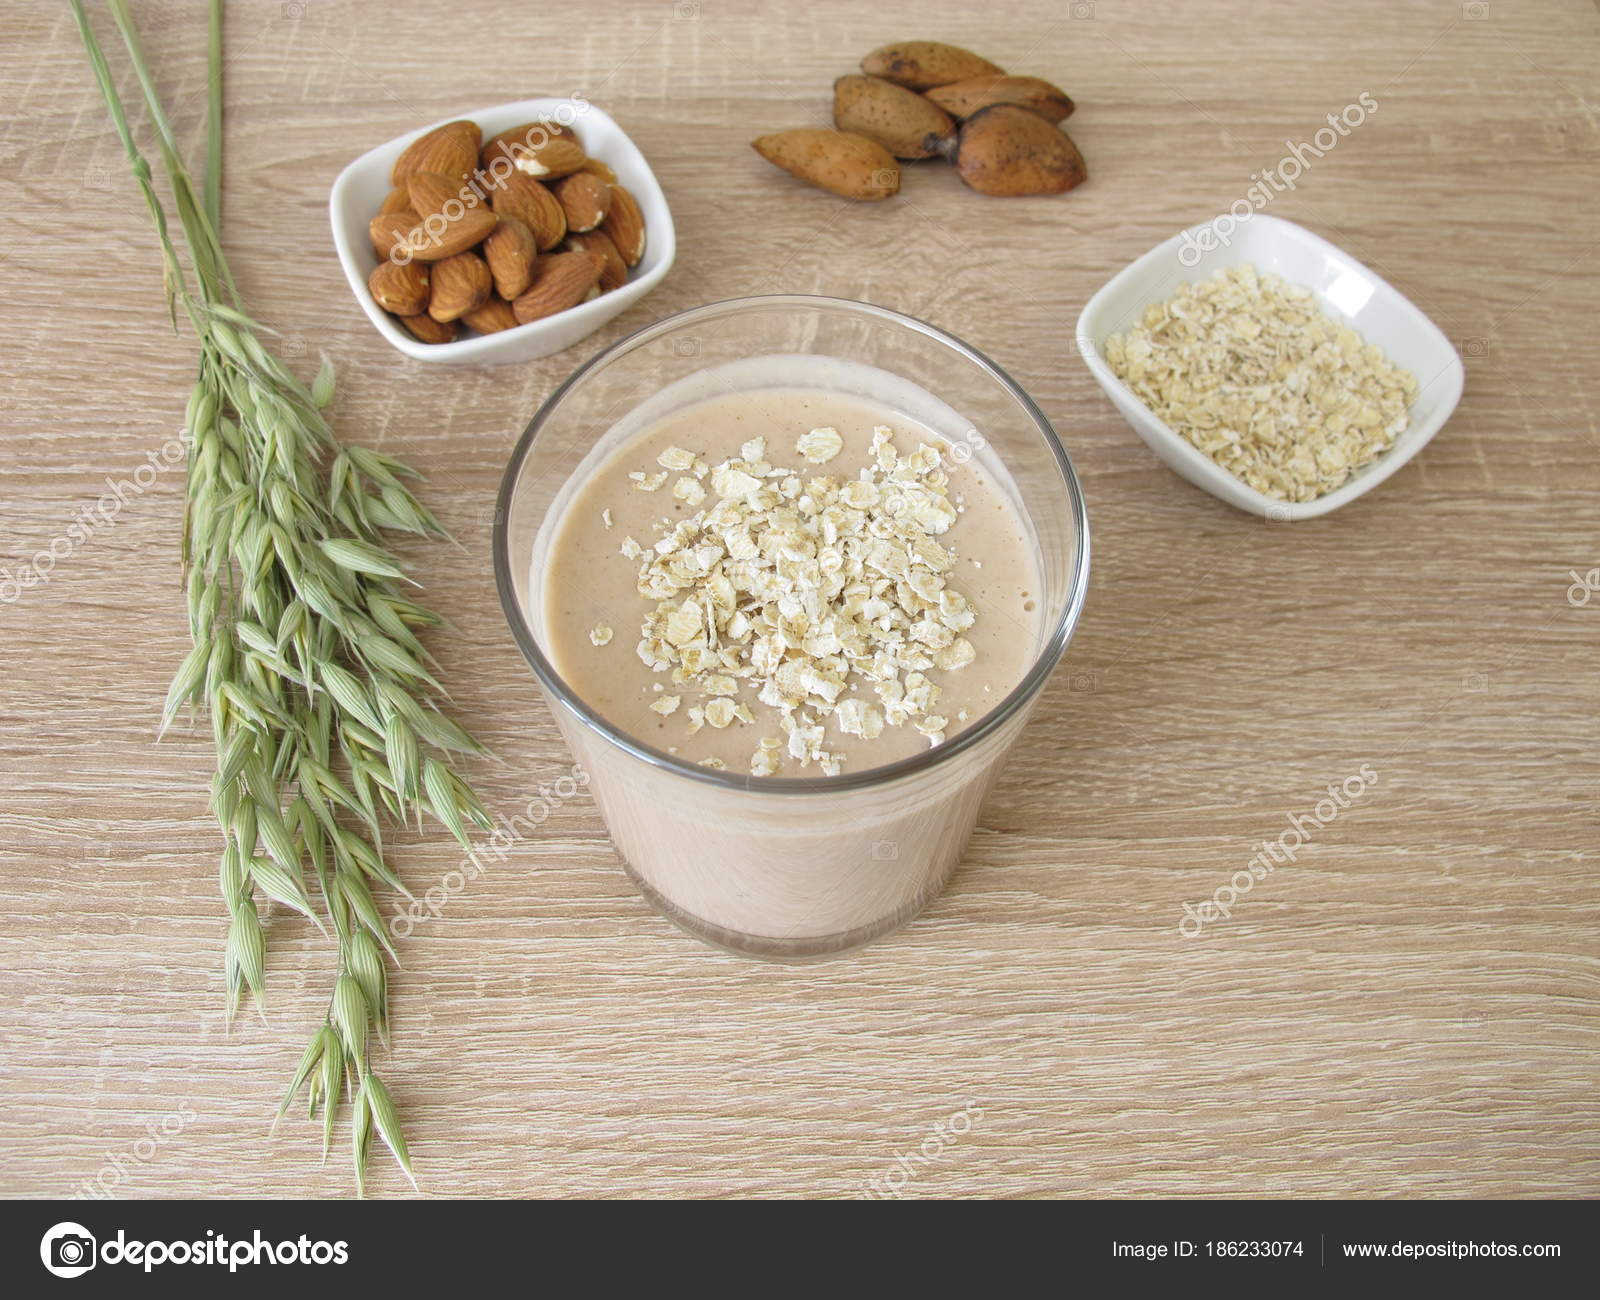 Low Carb Oats  Homemade Low Carb Protein Shake Almond Flour Rolled Oats